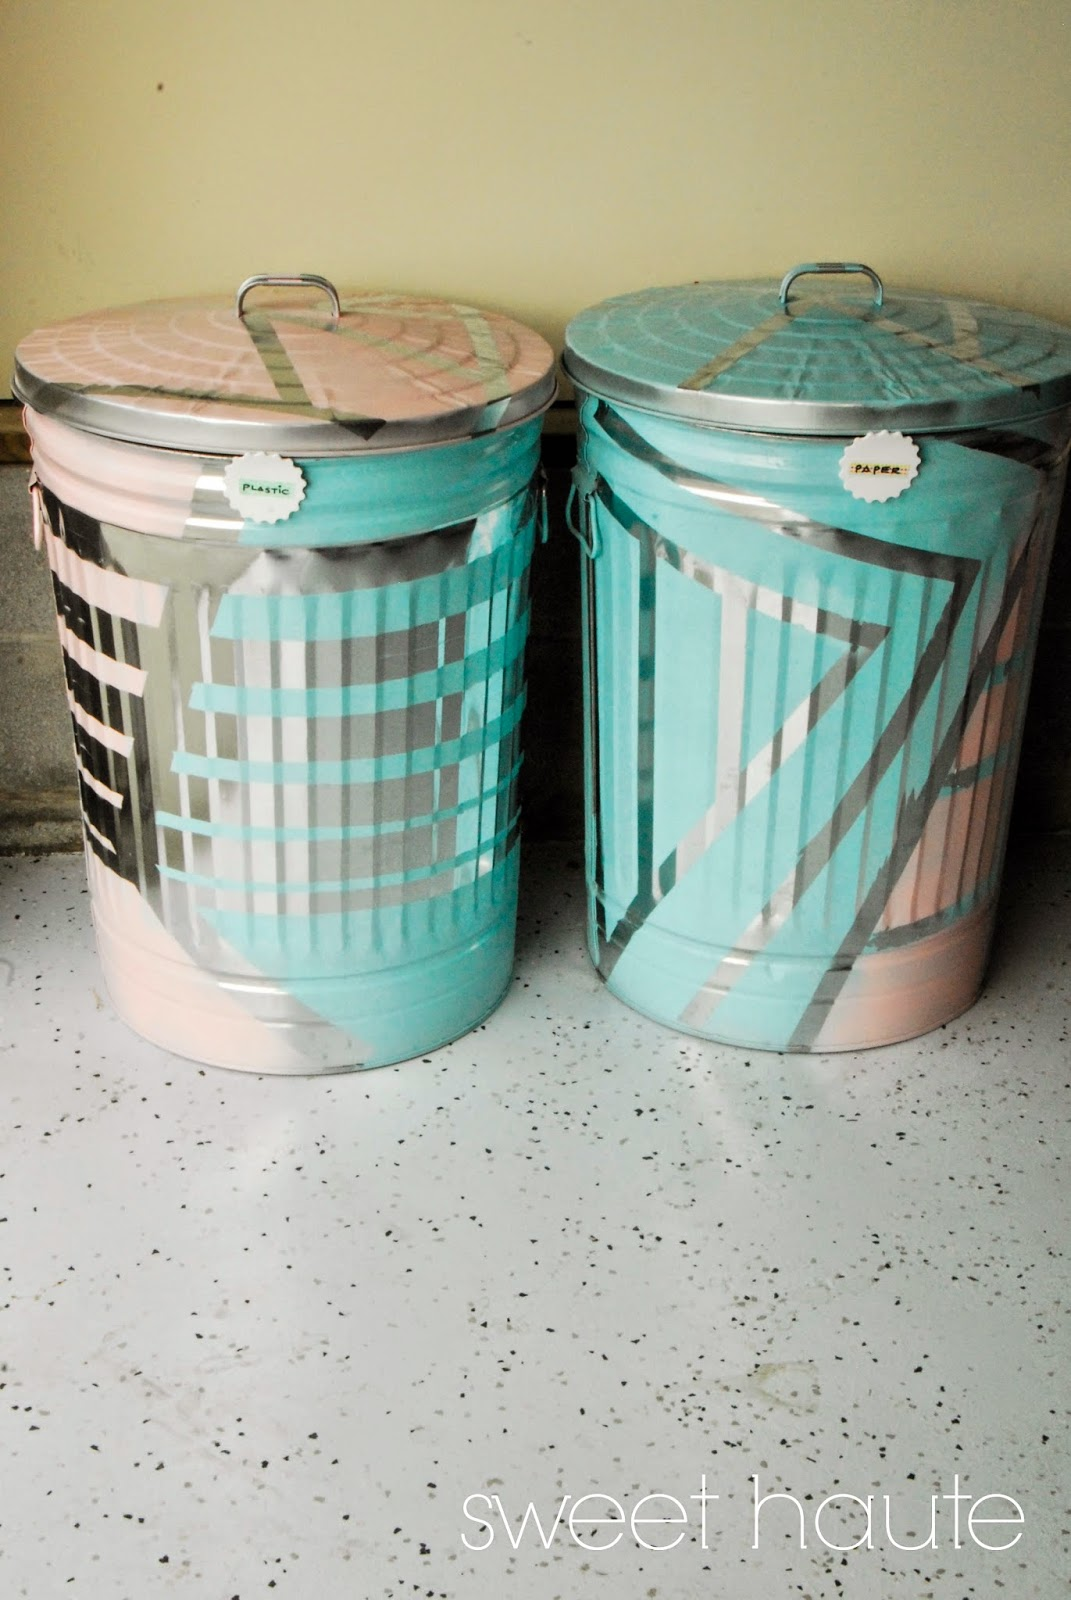 Sweethaute Diy Outdoor Organization Recycle Bins